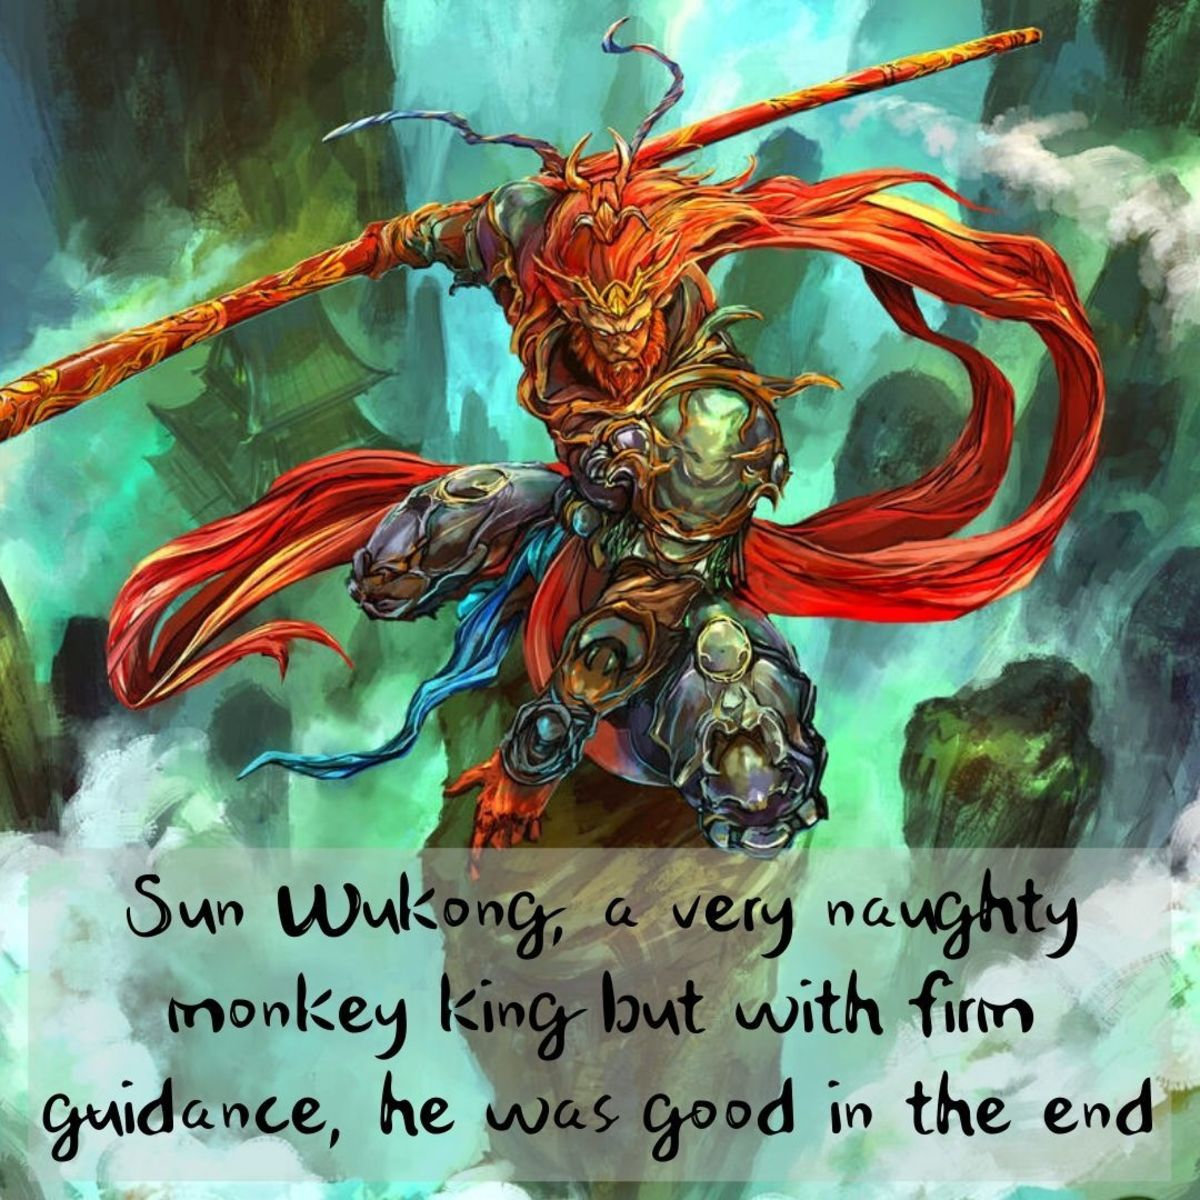 With guidance from Tang Sanzang, the Monkey King learns about virtues and the teachings of Buddhism and became a good superhero